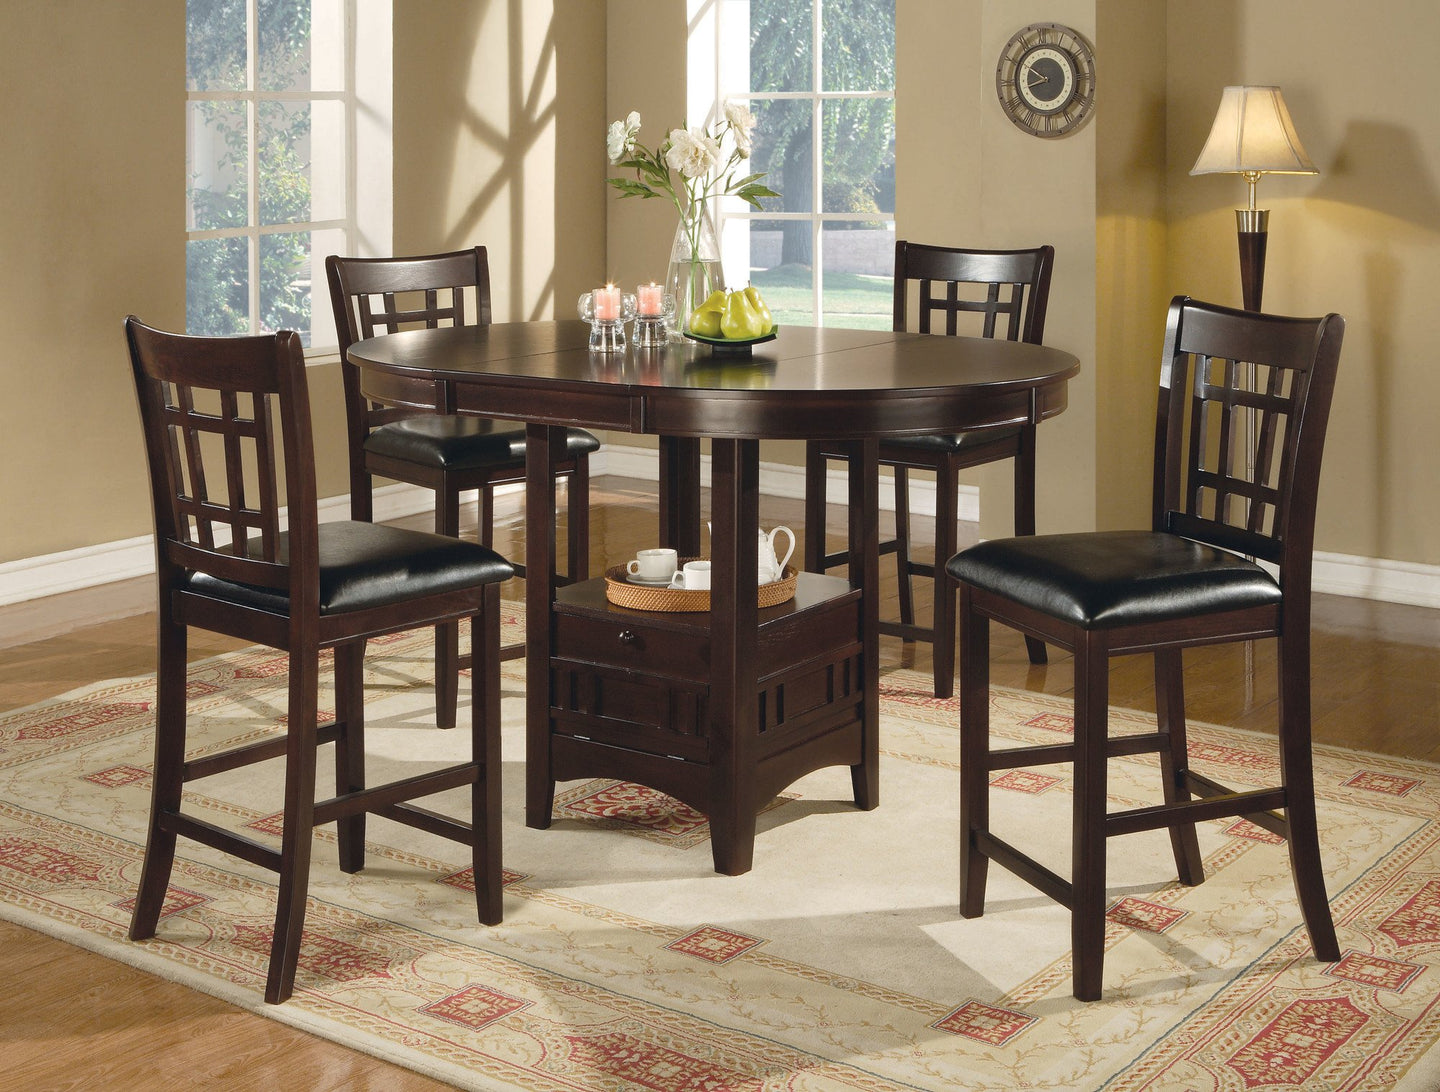 Lavon Cappuccino Oval Counter Height Table Chair Set